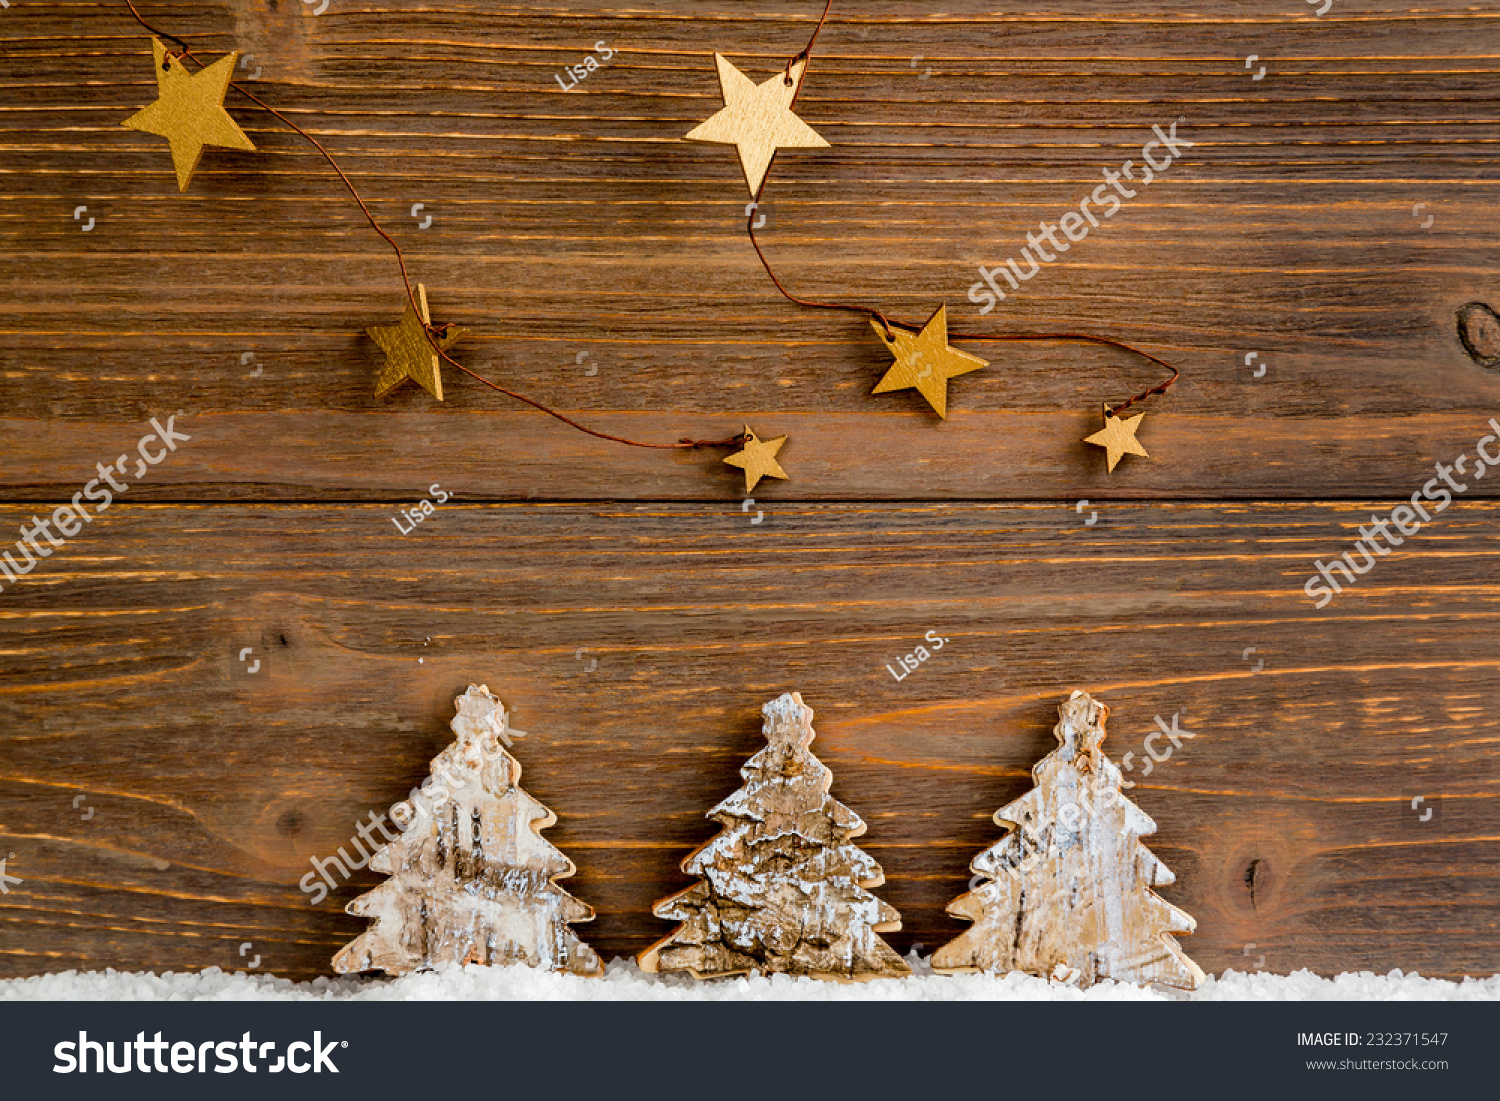 pretty decoration for christmas photo icon for a merry and peaceful christmas